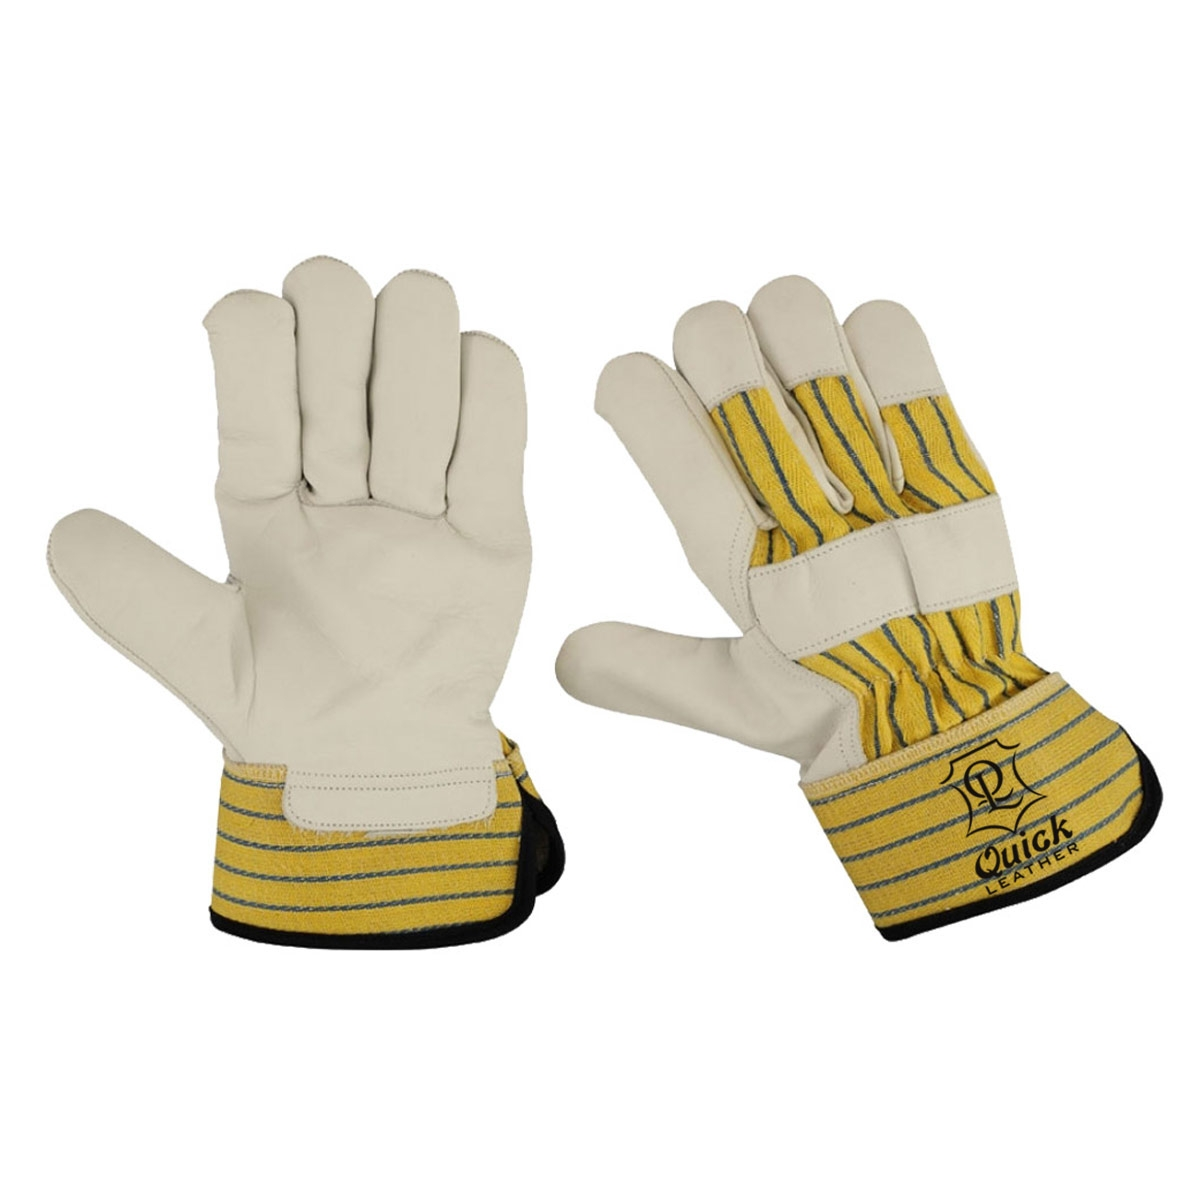 Working Gloves Flexible And Breathable Gloves QL-405